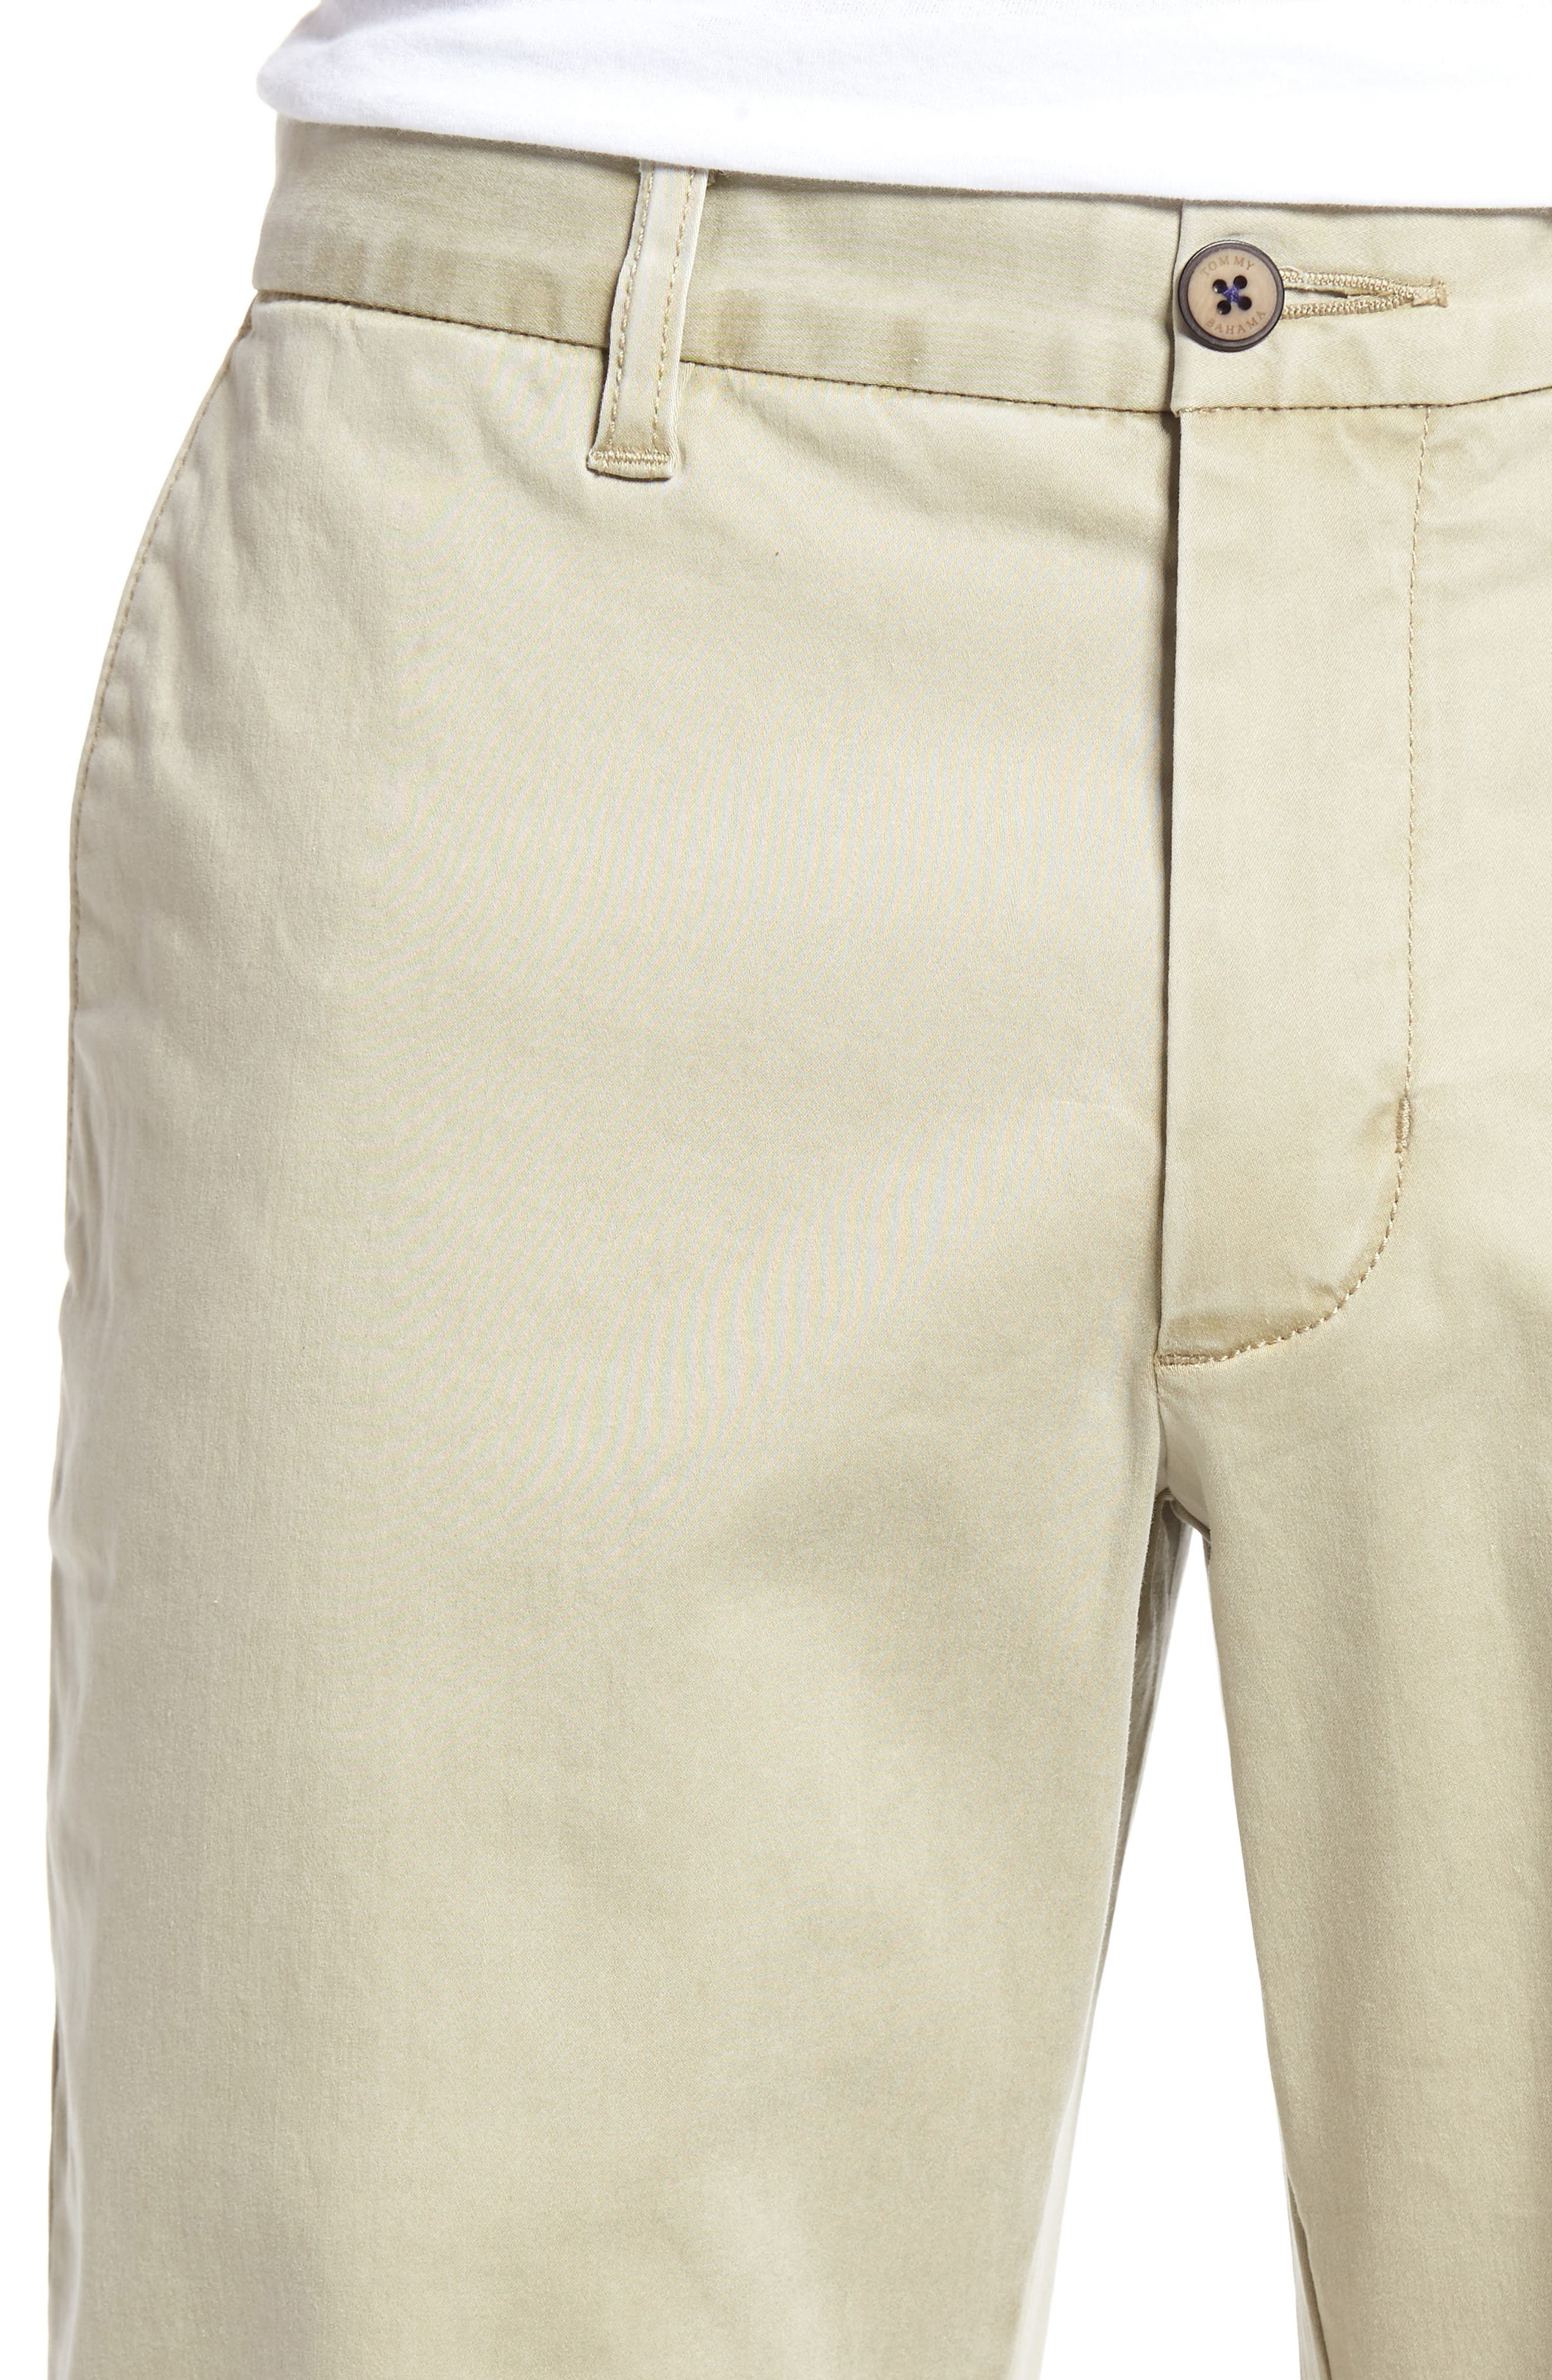 Boracay Flat Front Pants,                             Alternate thumbnail 4, color,                             KHAKI